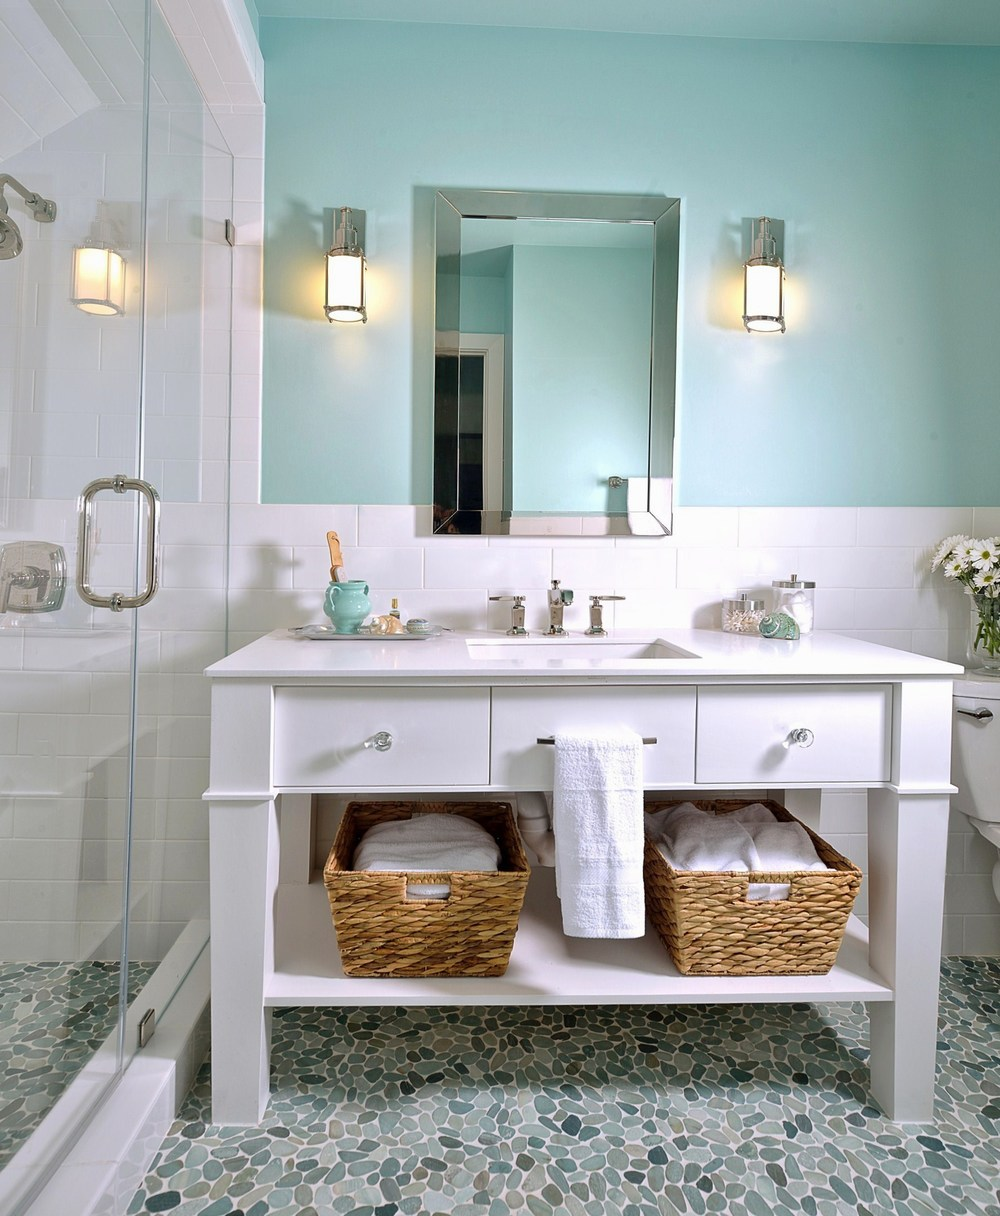 Custom designed vanity | Designer: Carla Aston #vanity #bathroomcabinetry